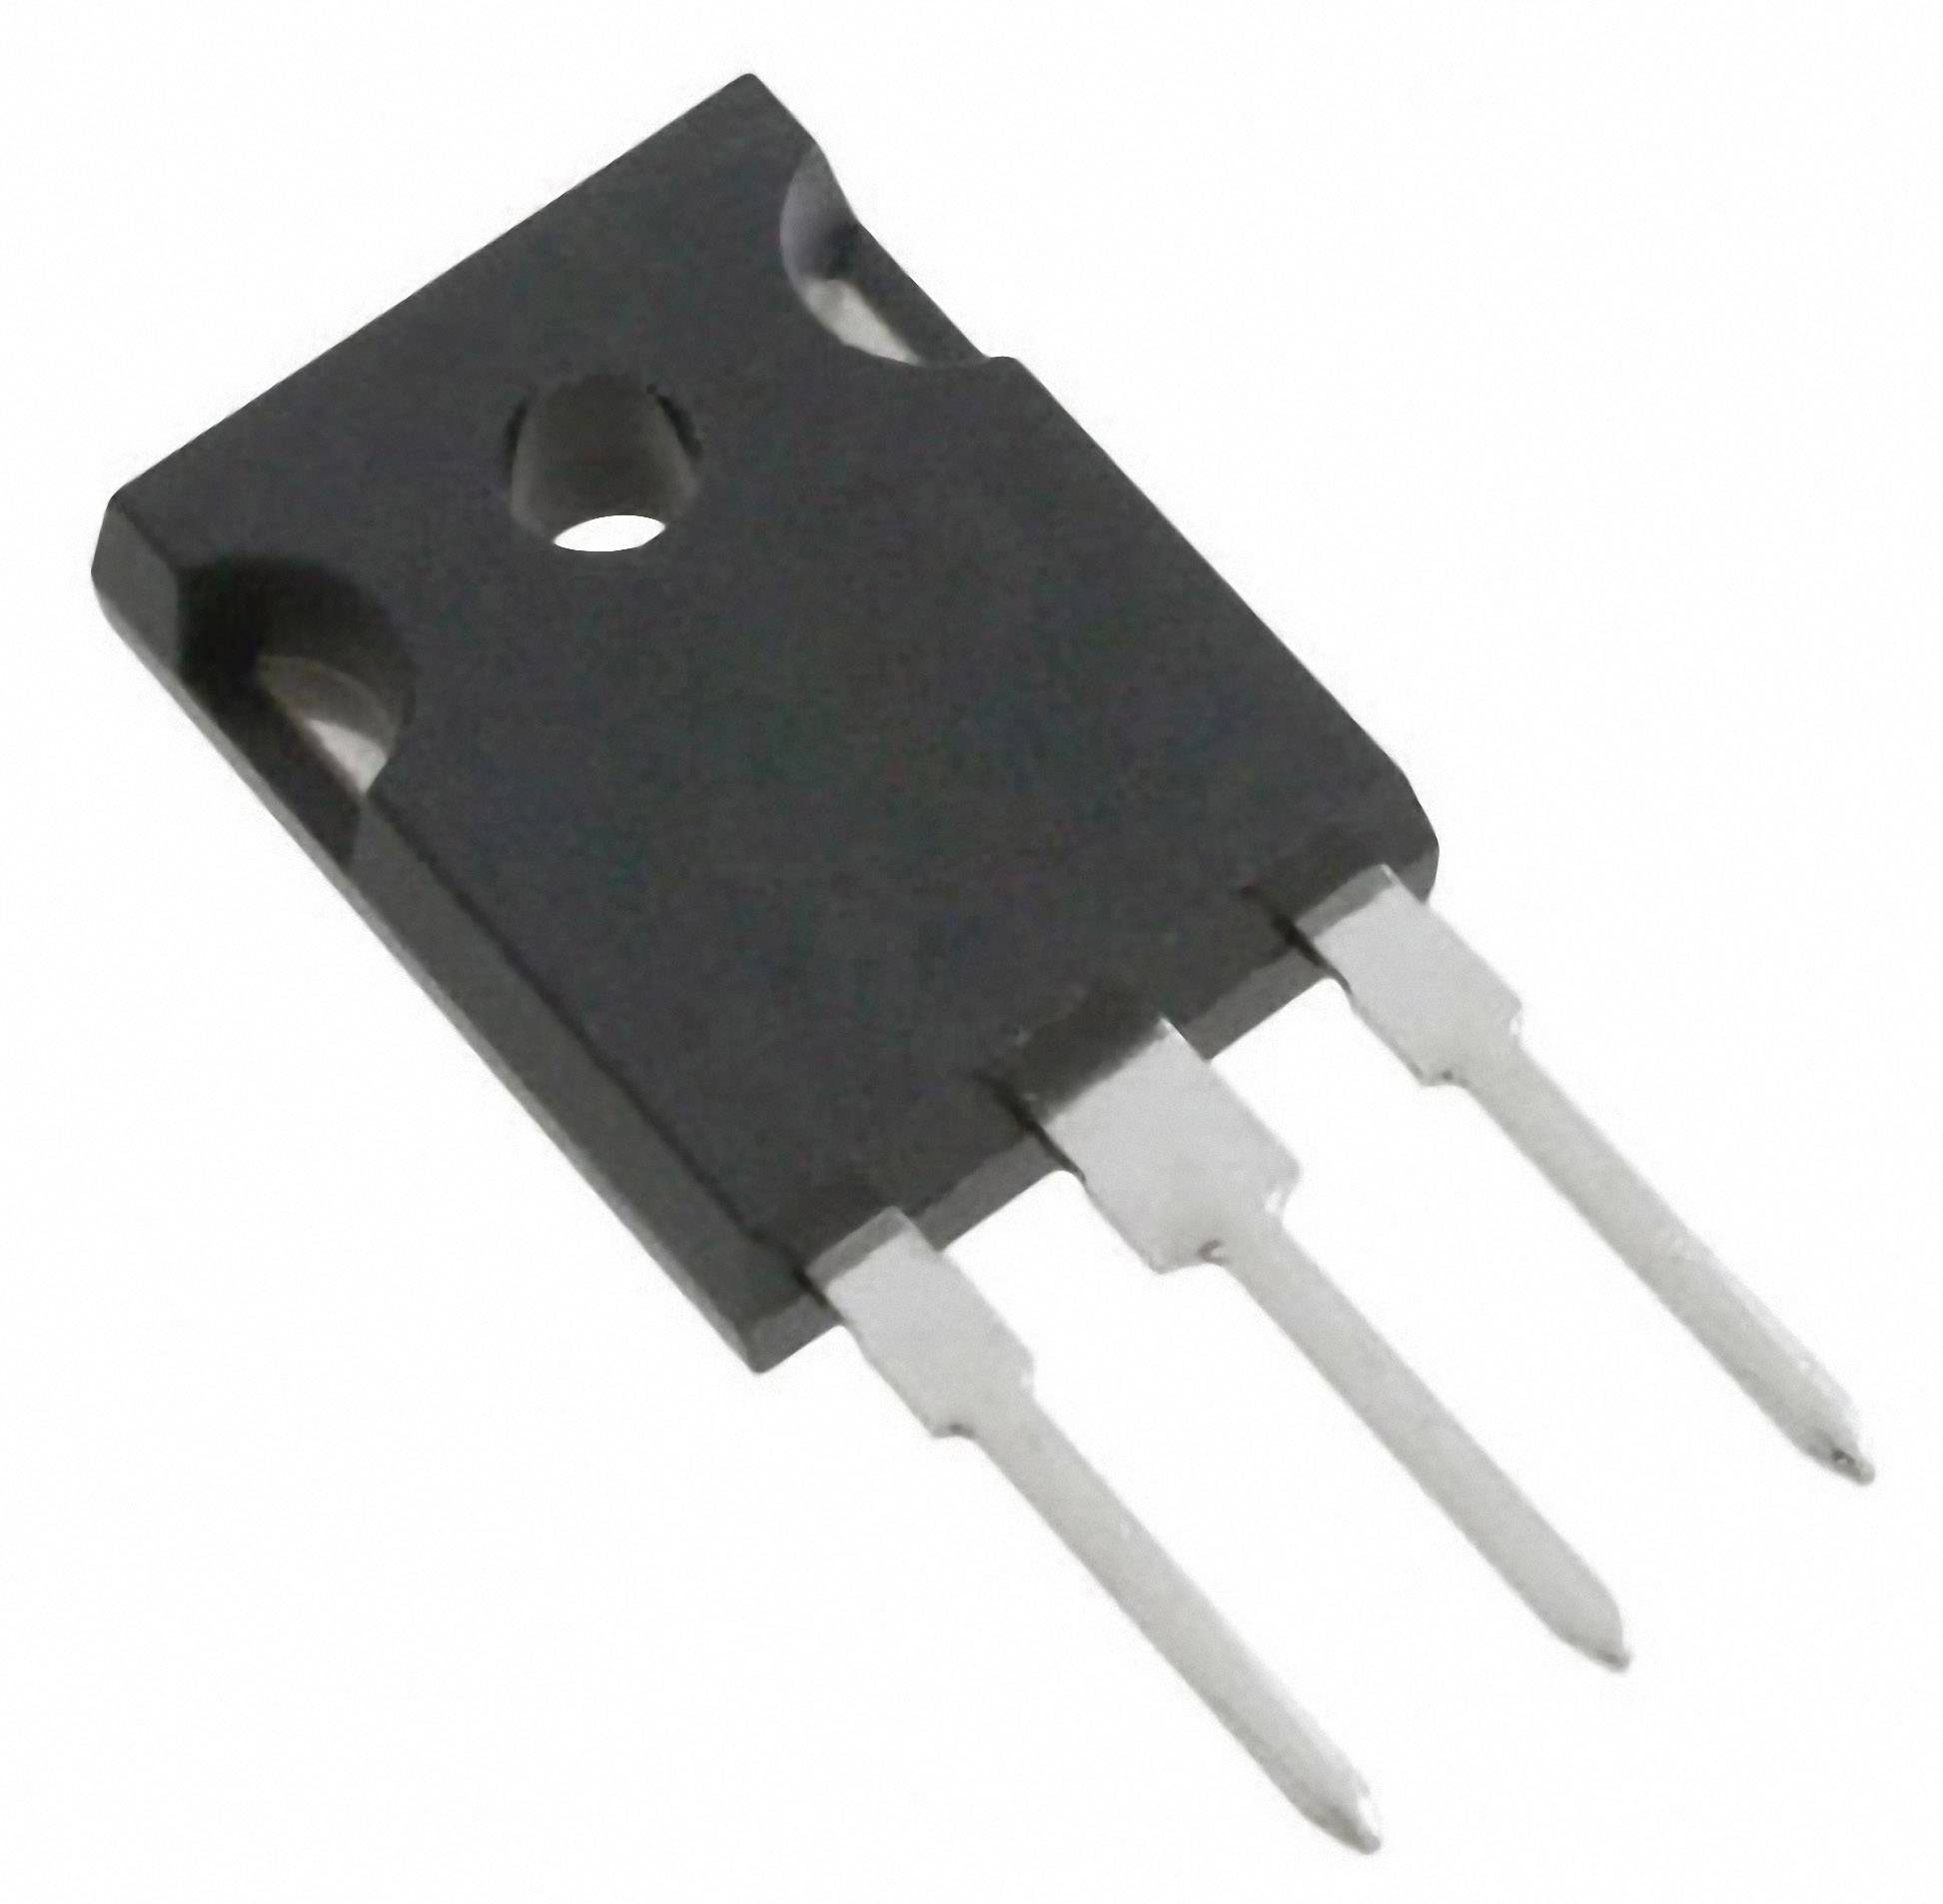 MOSFET Fairchild Semiconductor N kanál N-CH 600V FCH104N60F TO-247-3 FSC